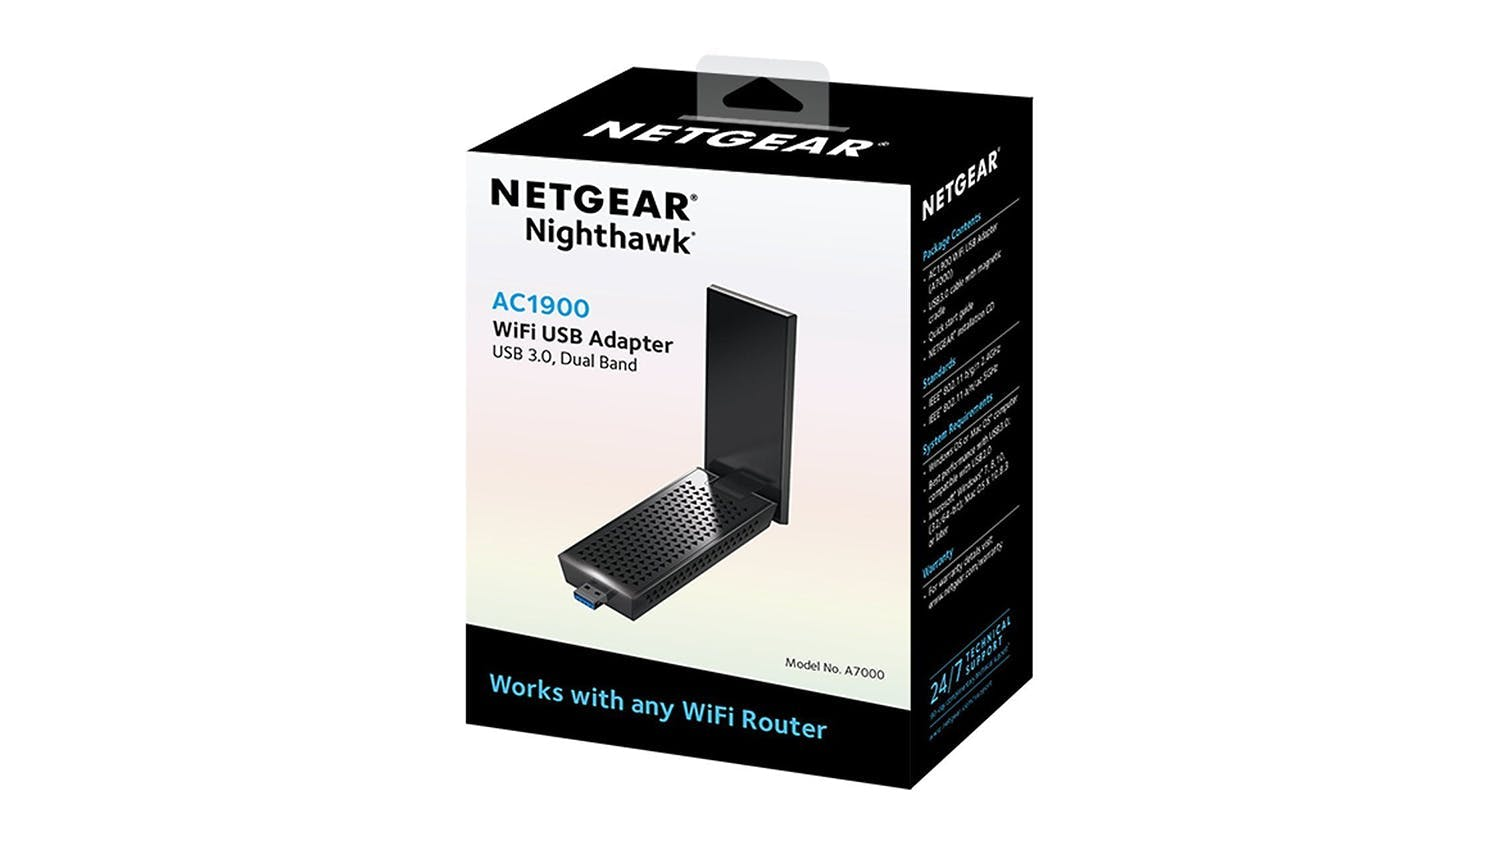 Netgear Nighthawk AC1900 WiFi USB 3.0 Adapter